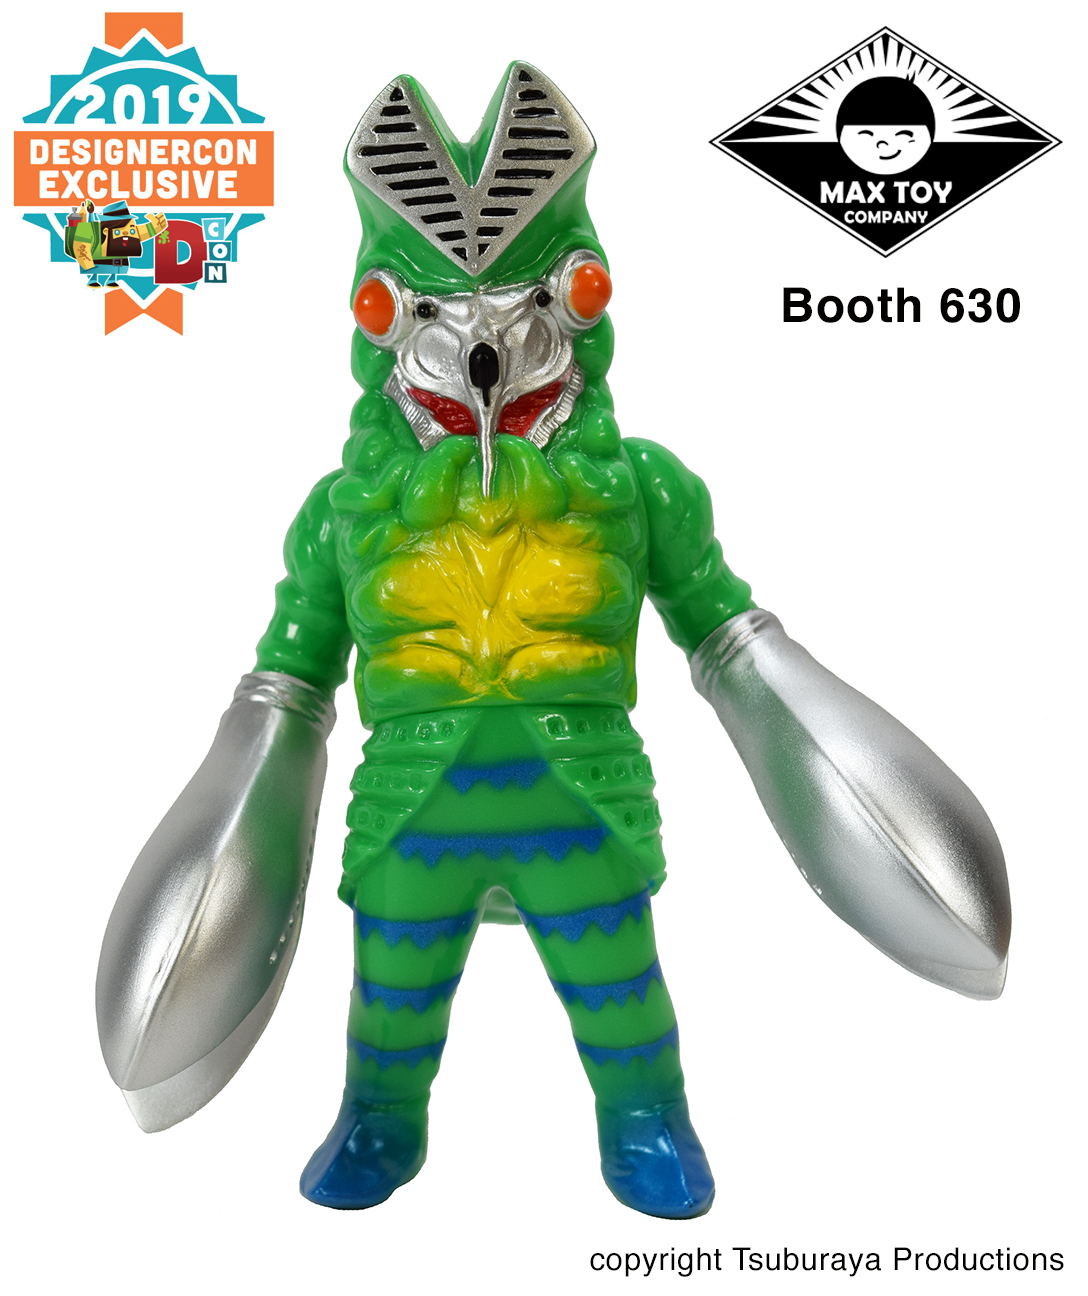 Dcon exclusive Alien Baltan kaiju Tsuburaya Productions